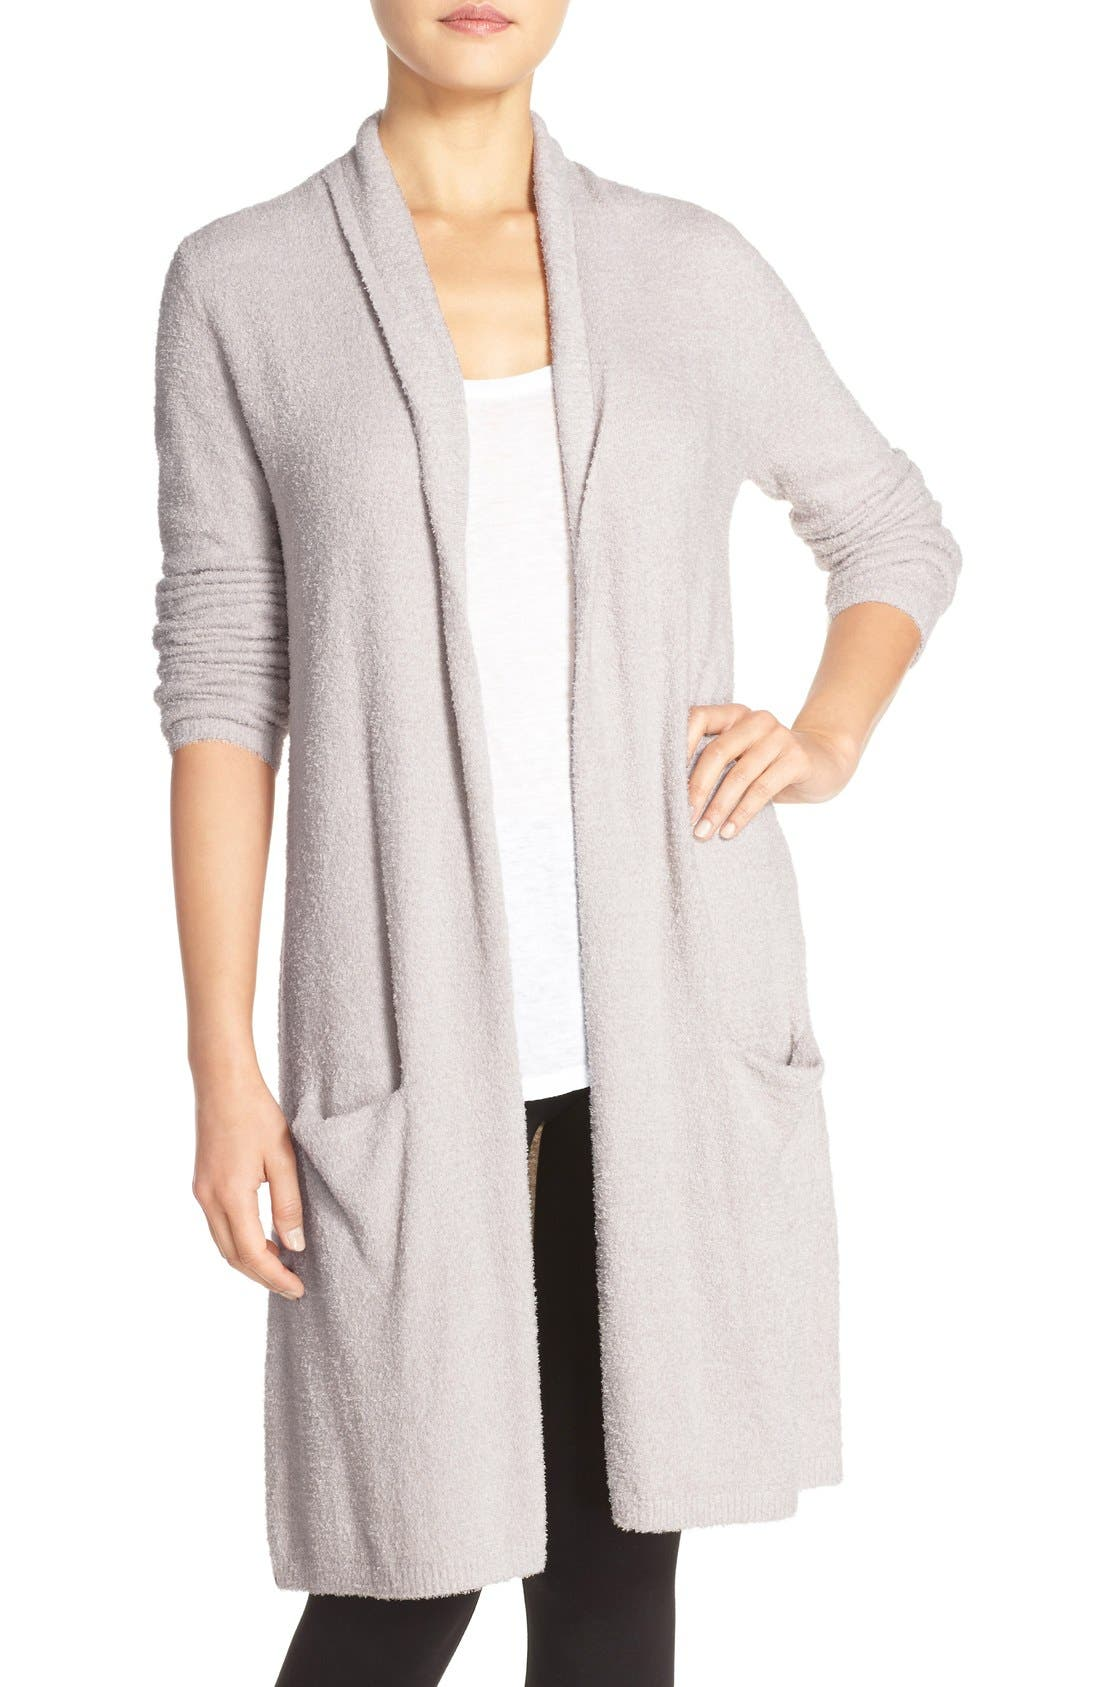 BAREFOOT DREAMS<SUP>®</SUP> CozyChic Lite<sup>®</sup> Long Essential Cardigan, Main, color, 020